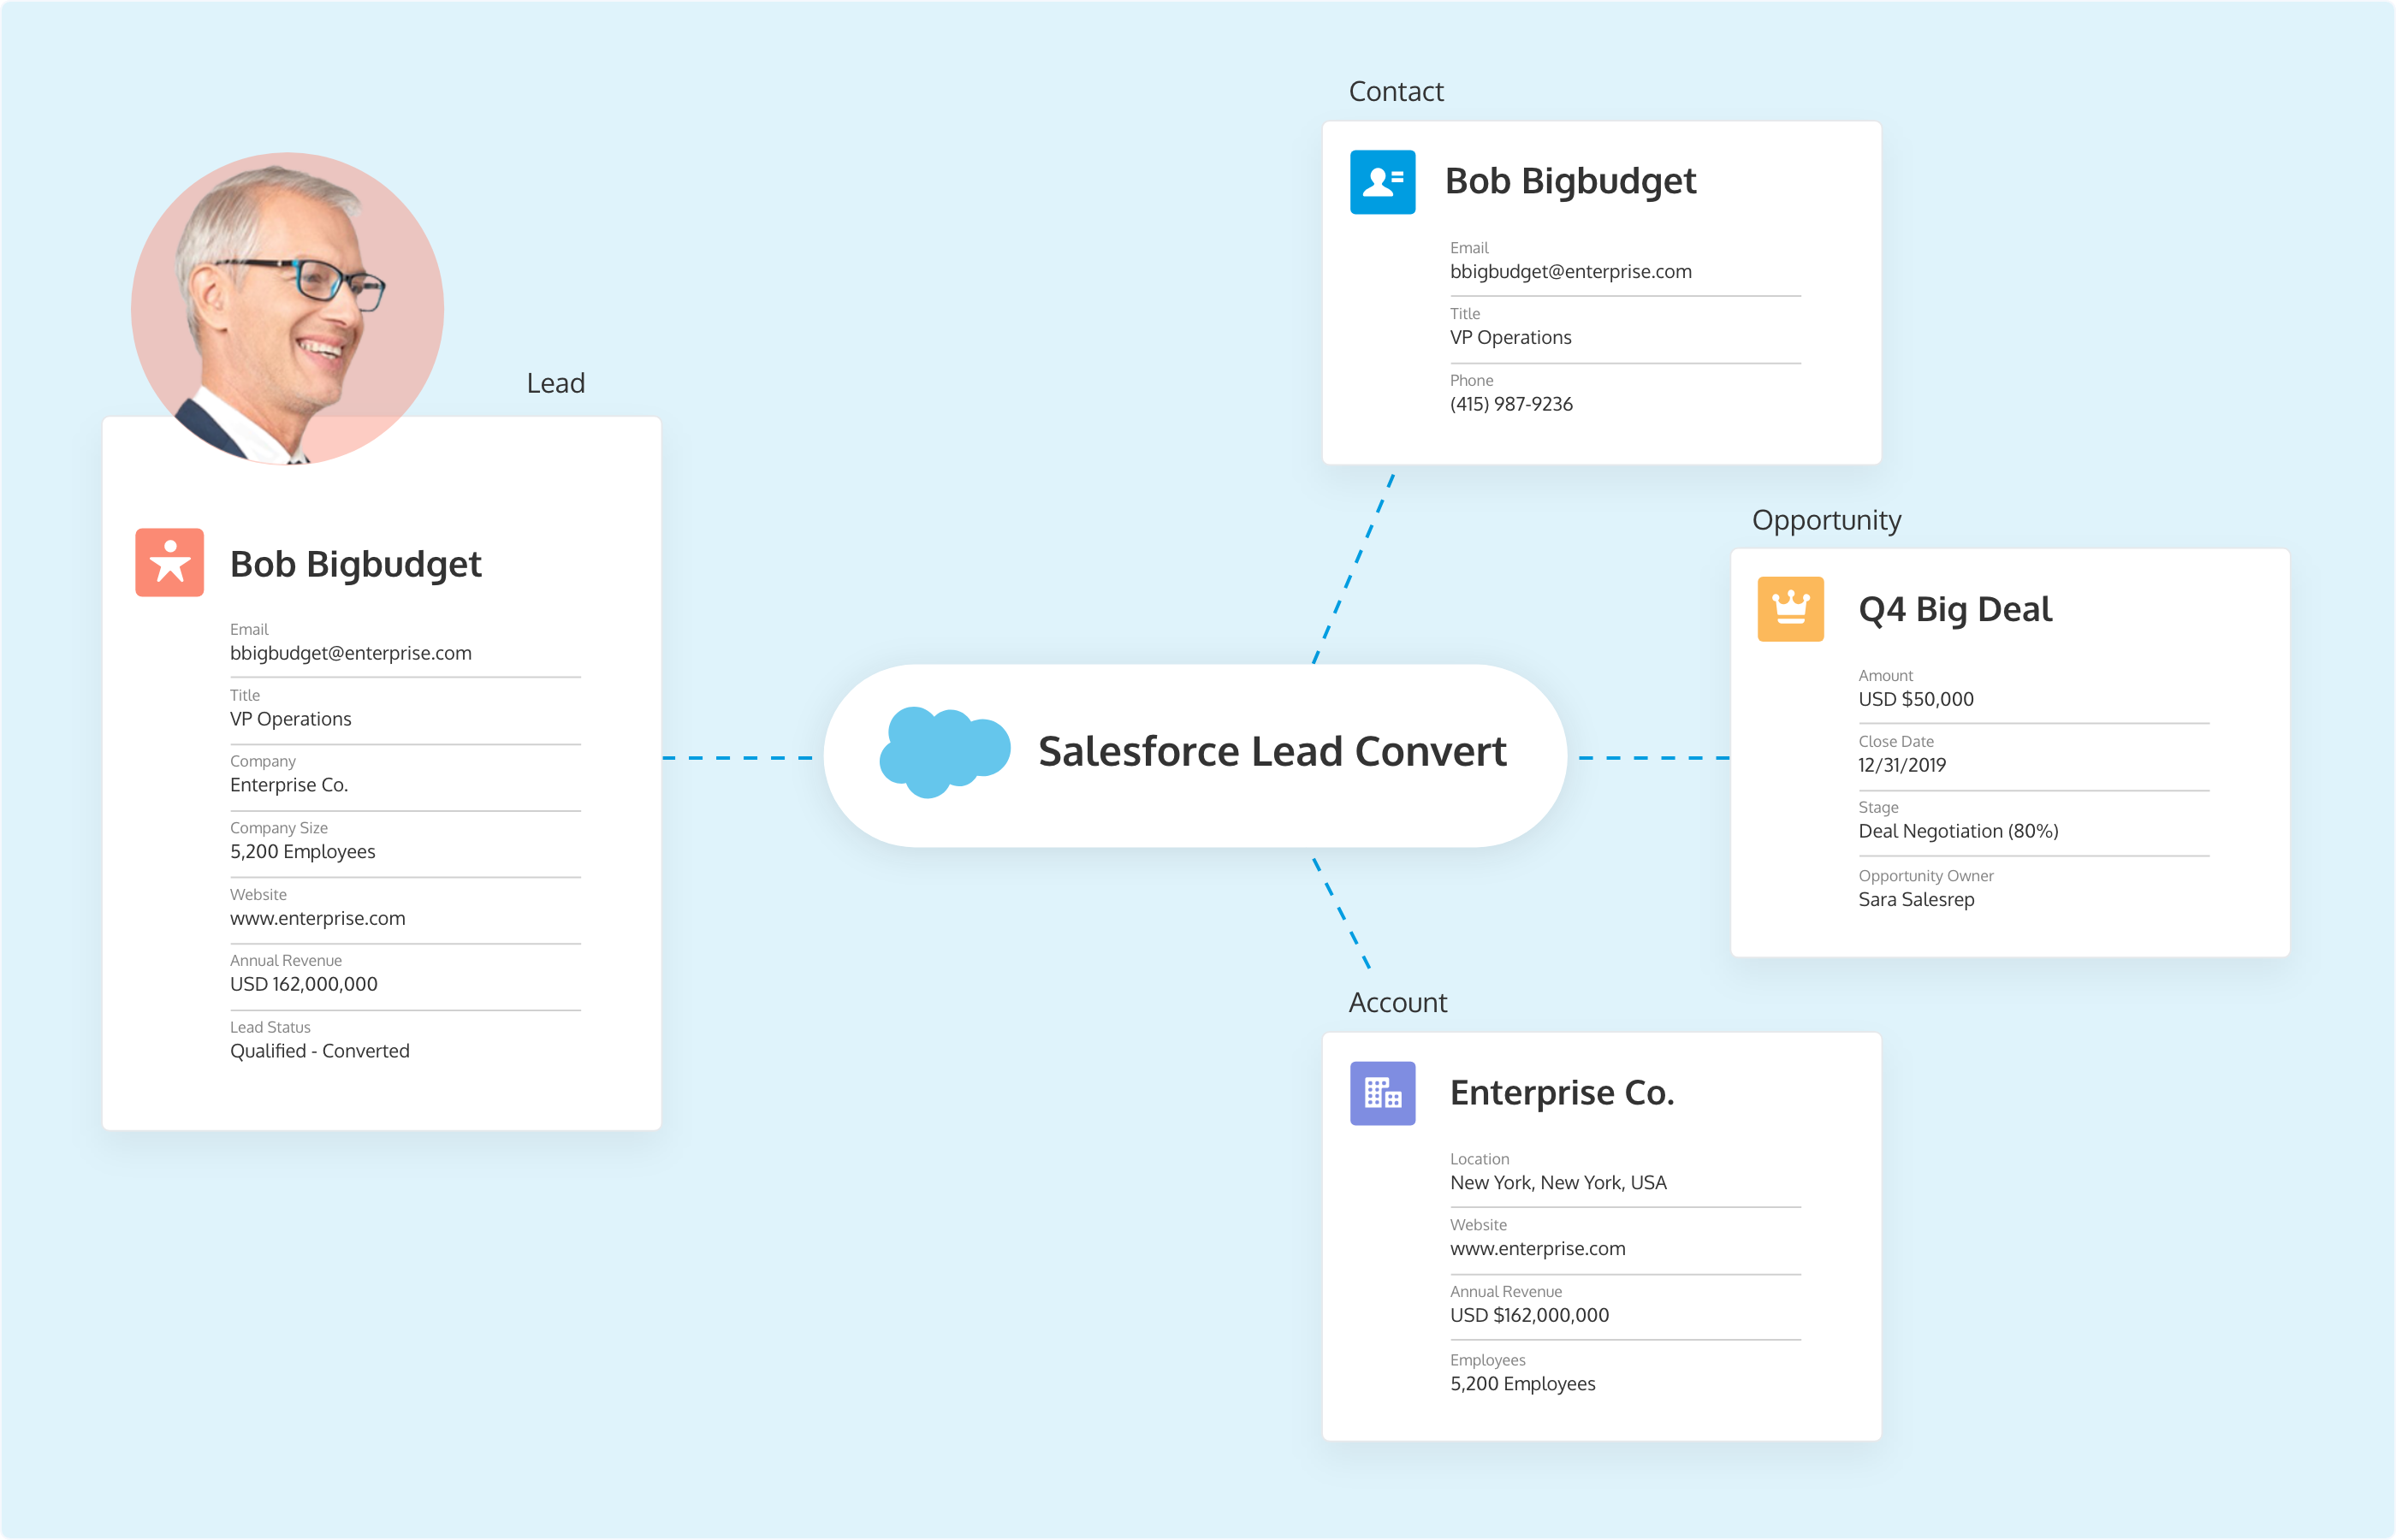 The Salesforce Lead conversion (Salesforce lead convert) process explained